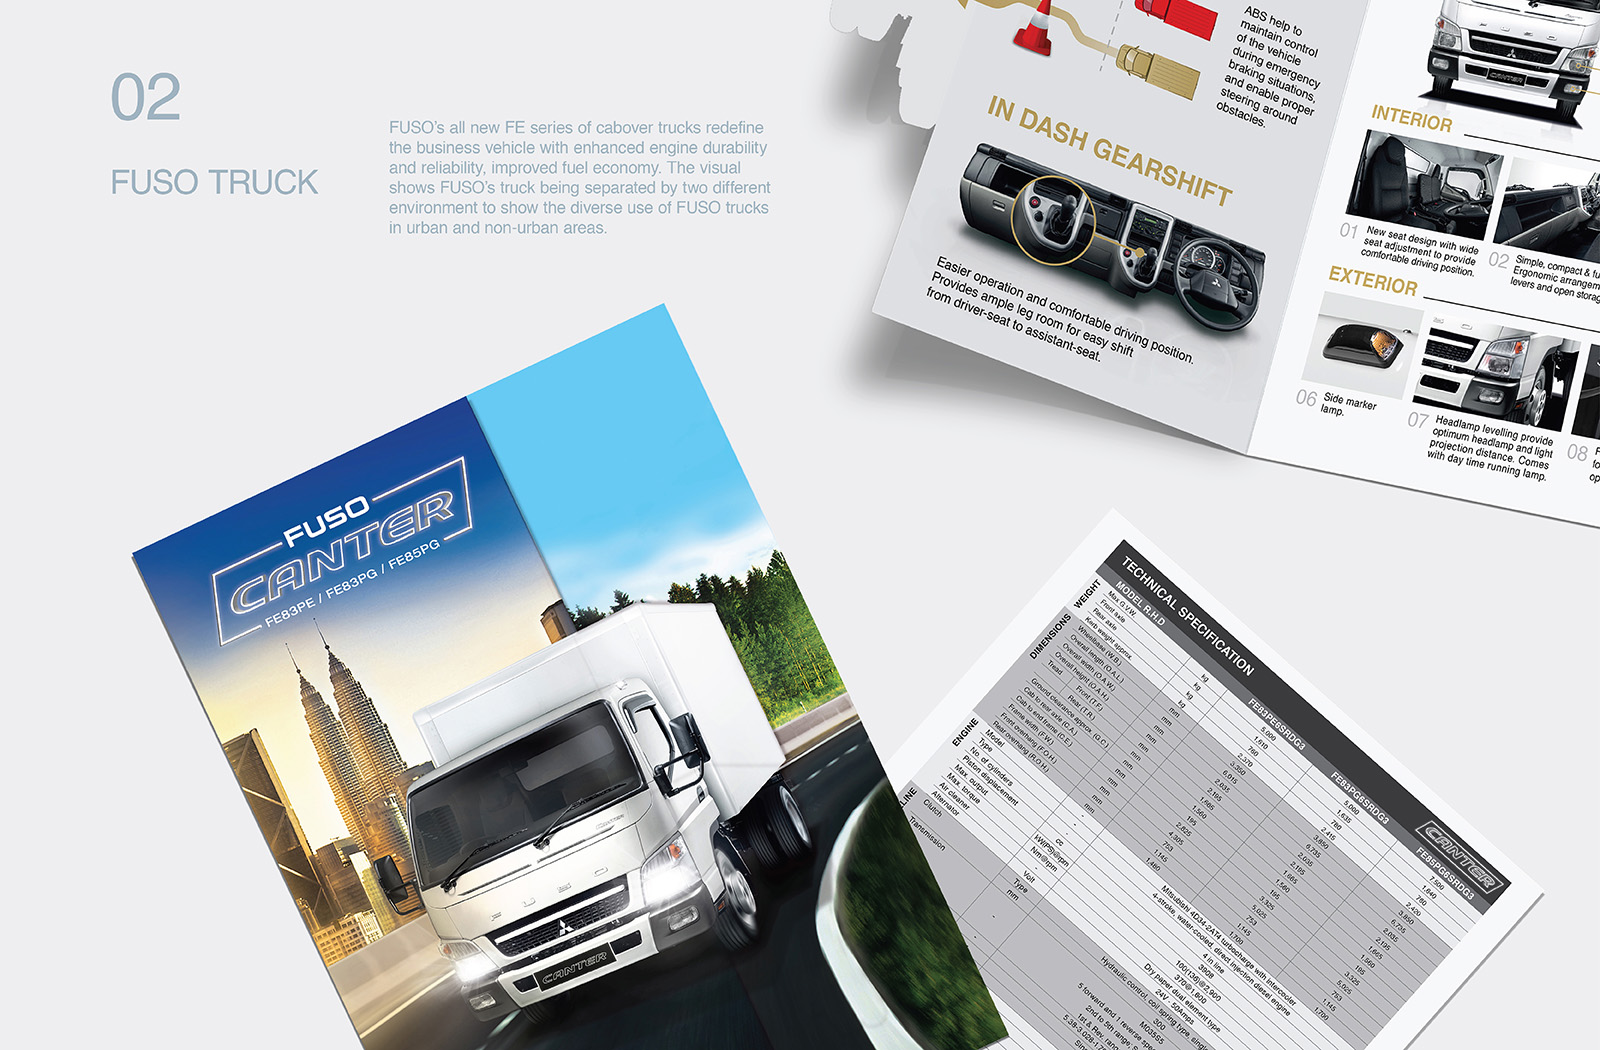 Fuso Trucks Canter FE/FG 2017 brochure design featuring a die-cut of the the truck against two different background showcasing truck's versatility in various environment with product USP